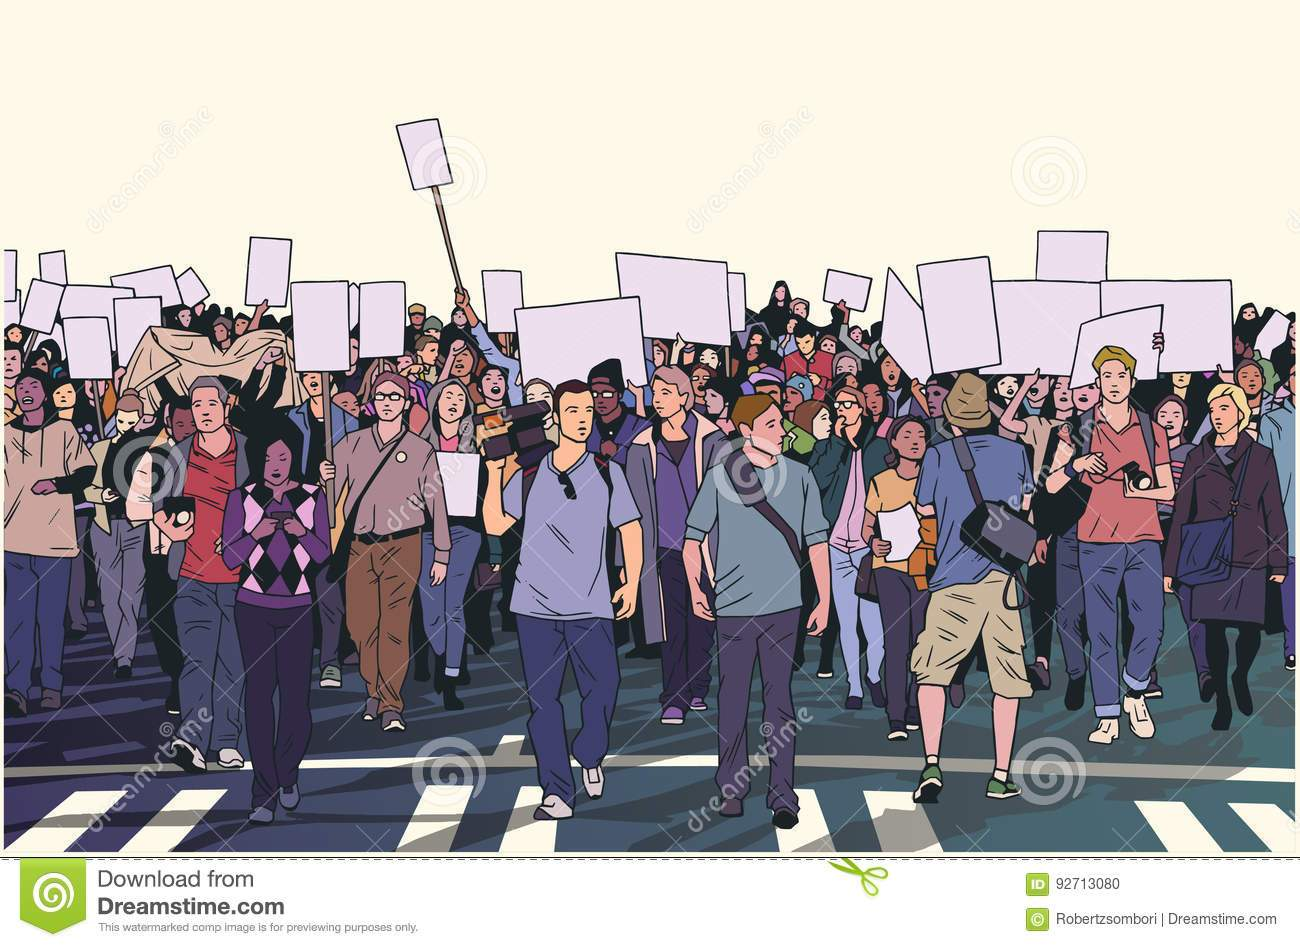 Peaceful protest clipart png royalty free stock Peaceful protest clipart 3 » Clipart Portal png royalty free stock